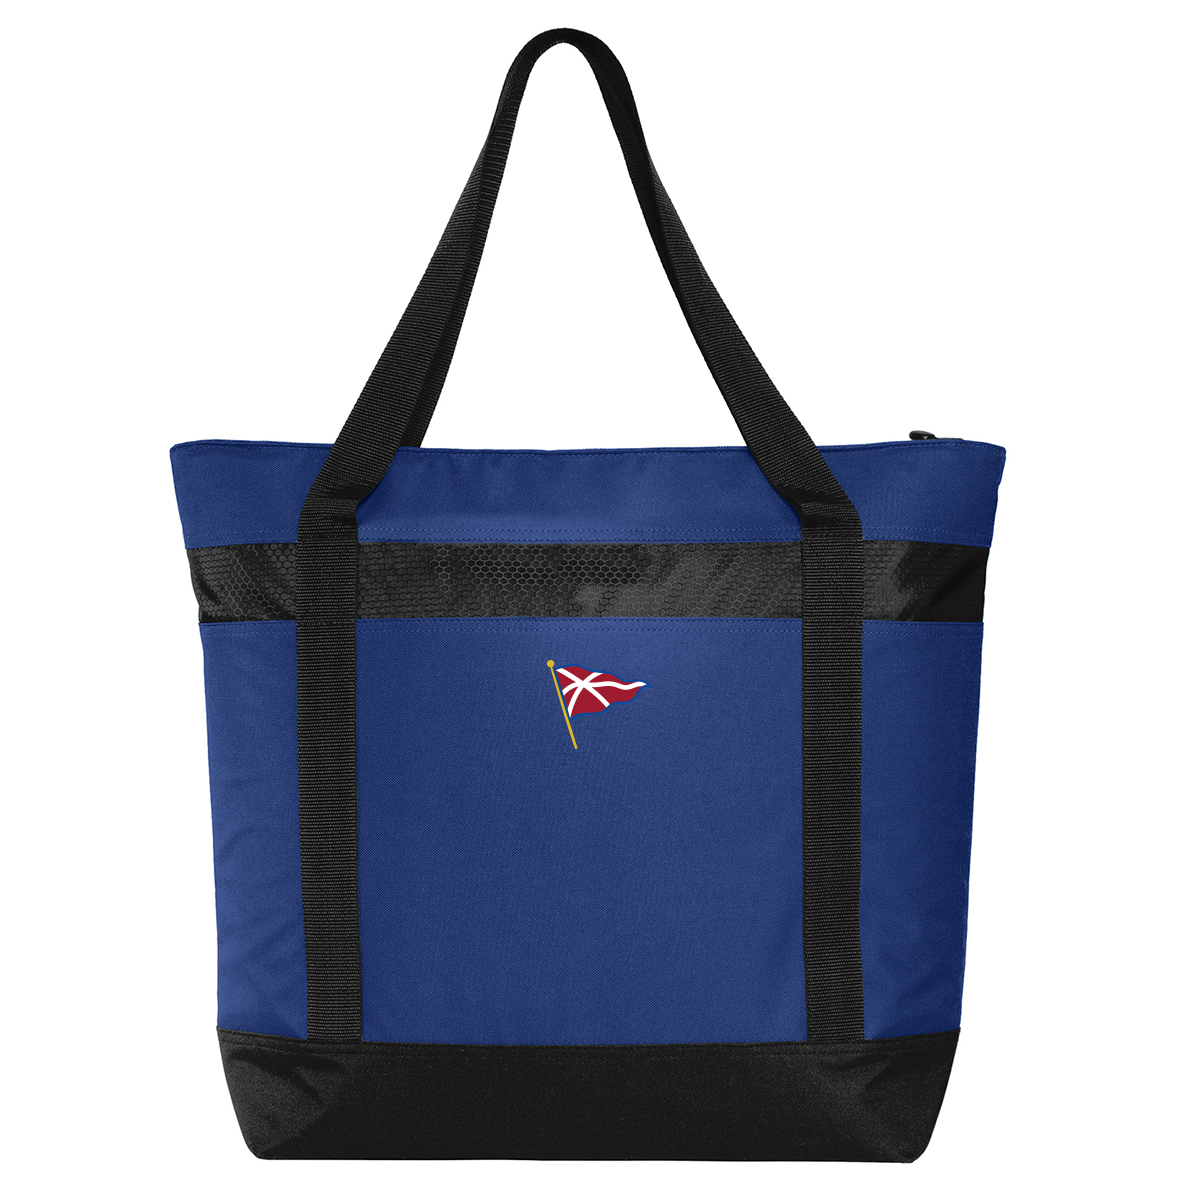 Orient Yacht Club - Large Cooler Tote